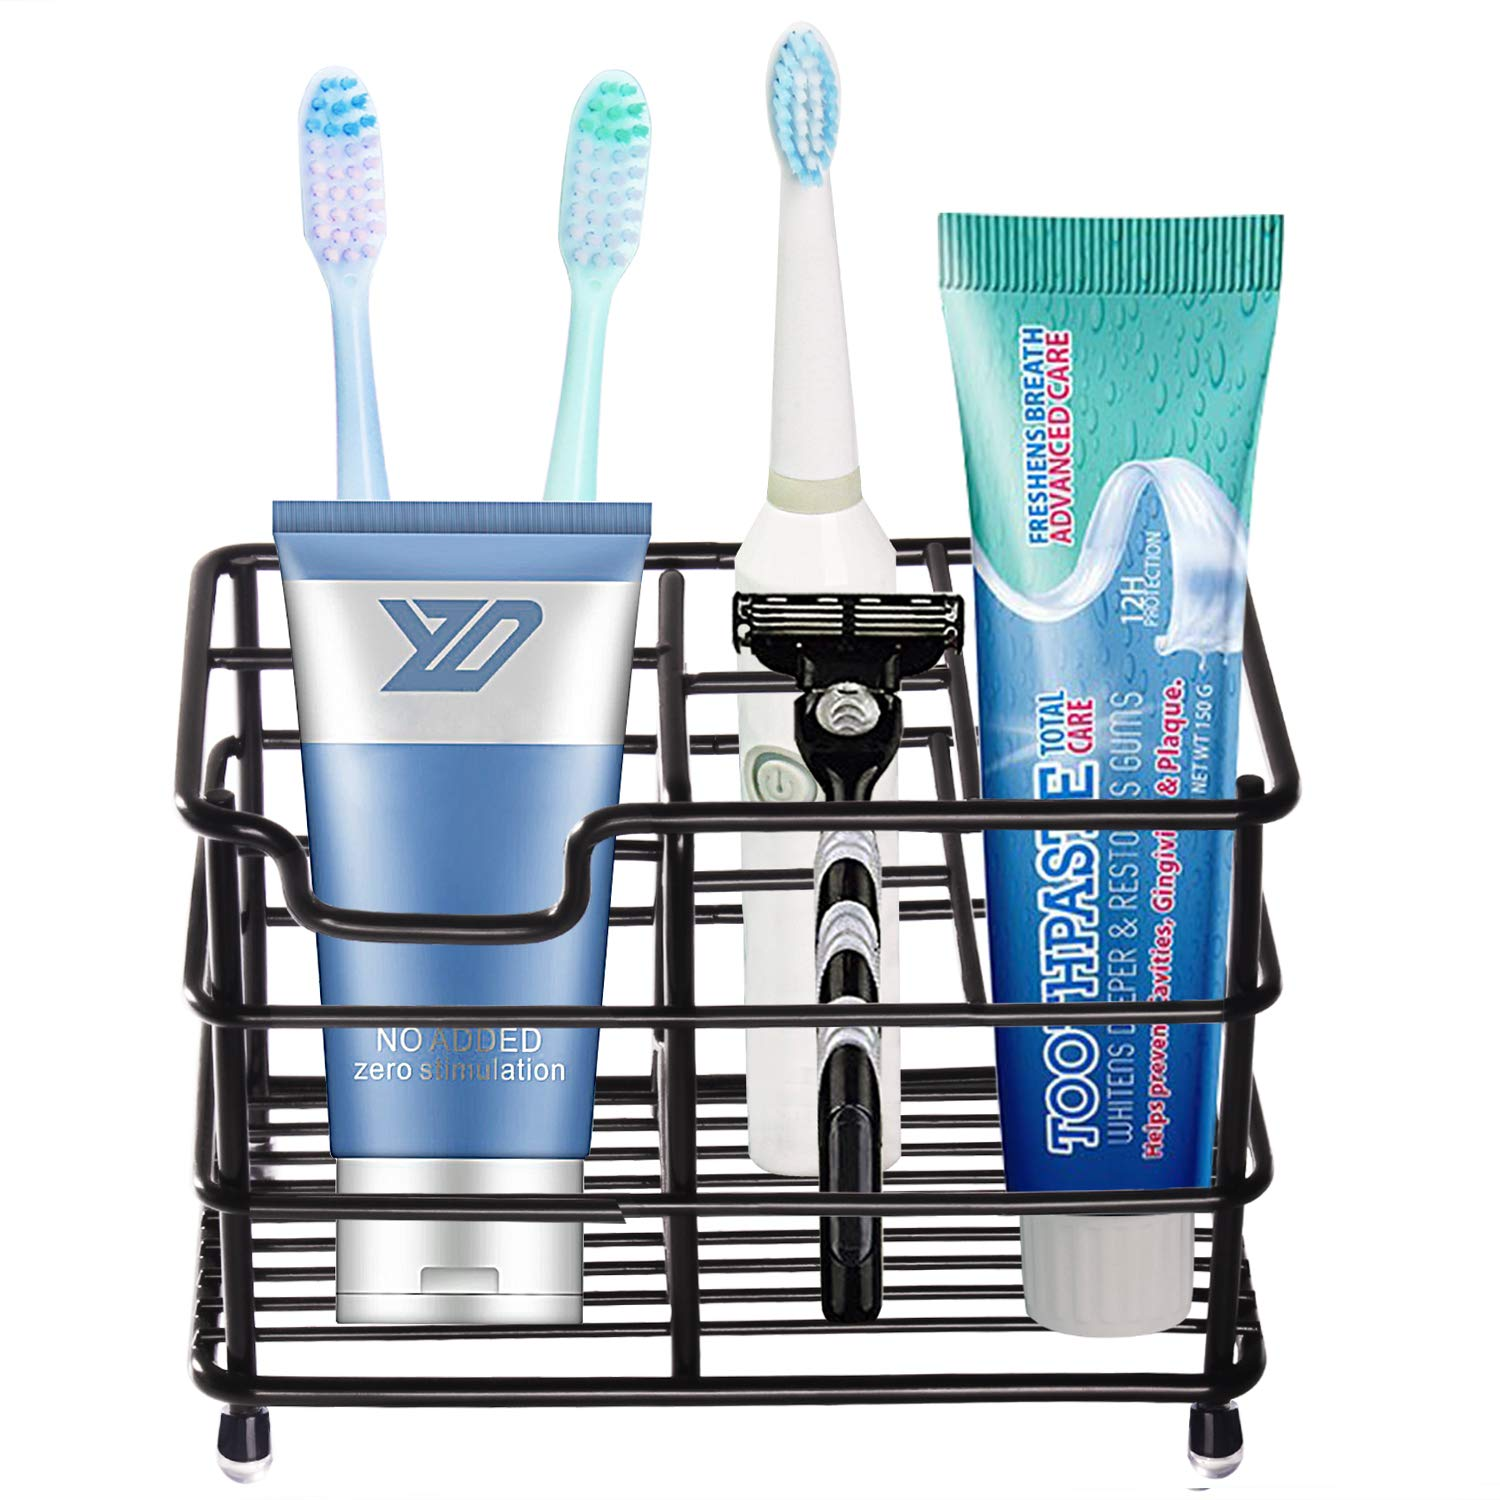 HYRIXDIRECT Toothbrush Holder Black Plating Stainless Steel Rustproof Bathroom Electric Toothbrush Holder Toothpaste Storage Organizer Multi-Functional 6 Slots Stand for Vanity,Countertops (Black-01) by HYRIXDIRECT